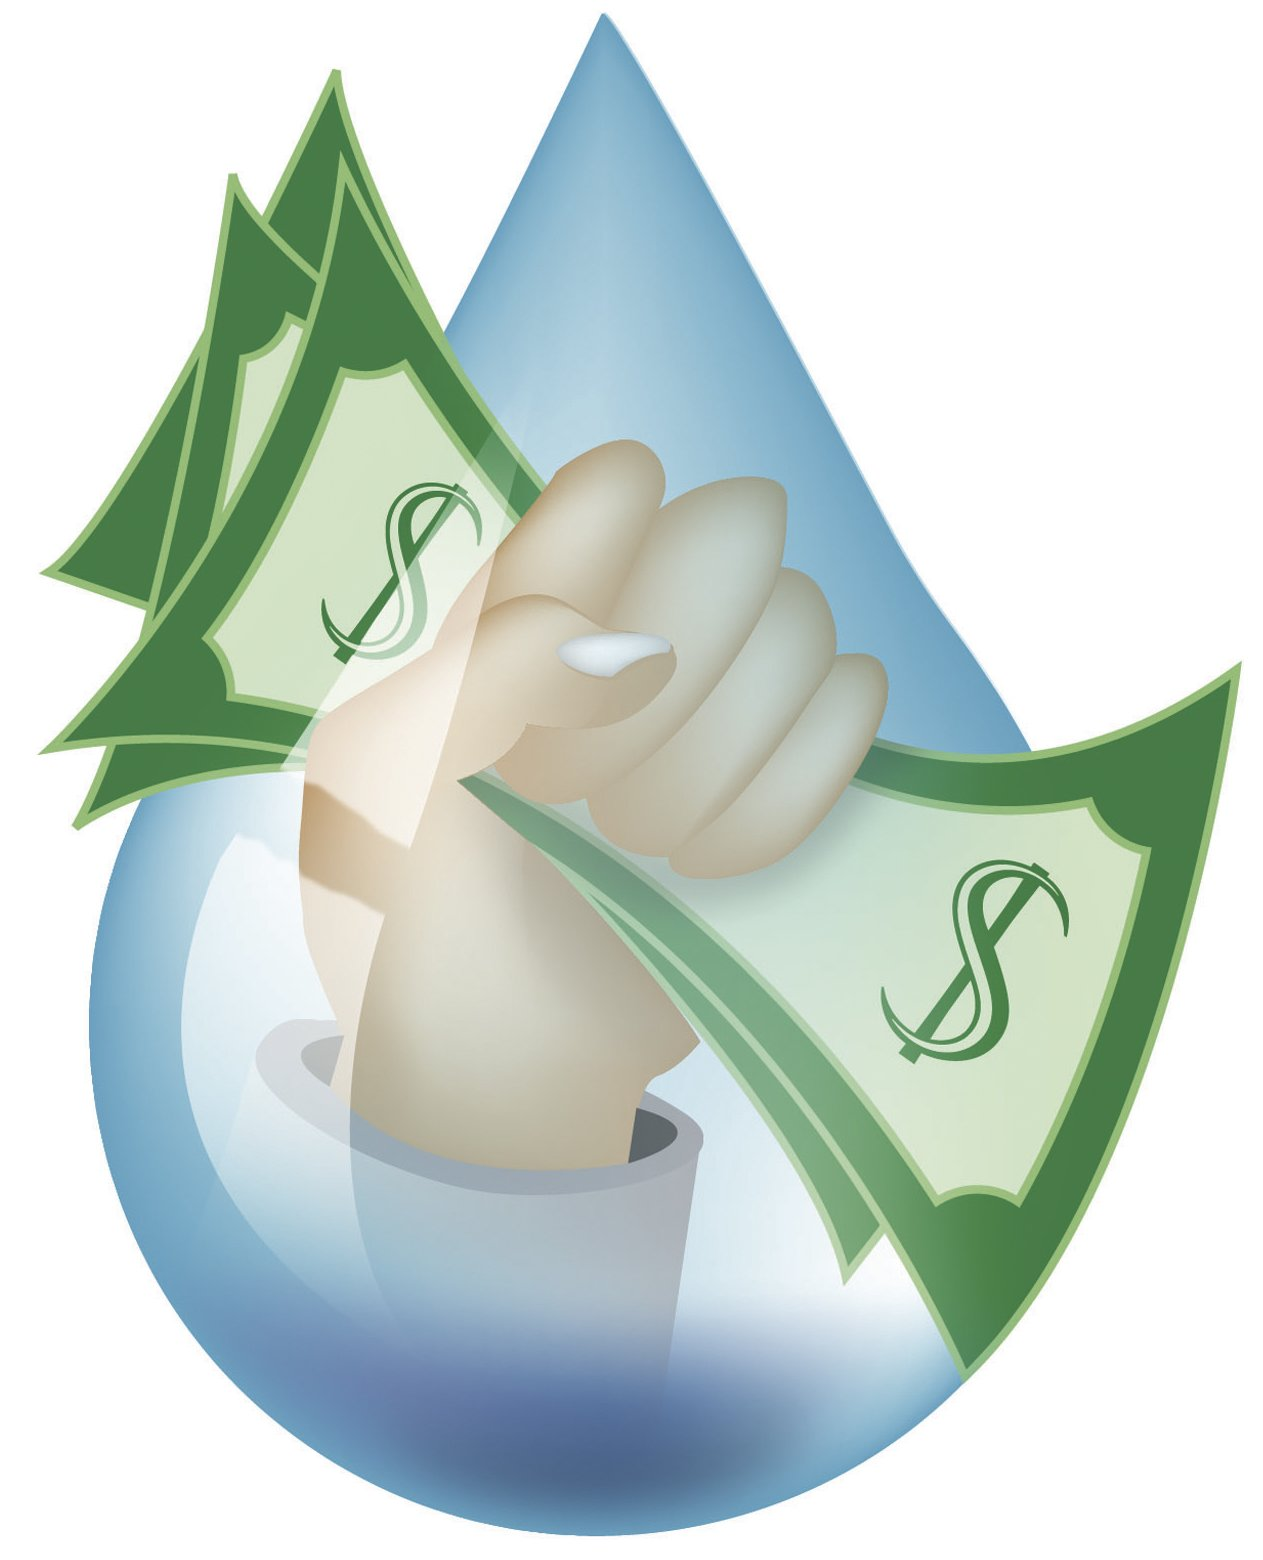 Pay Water/Sewer Or Electricity Bill